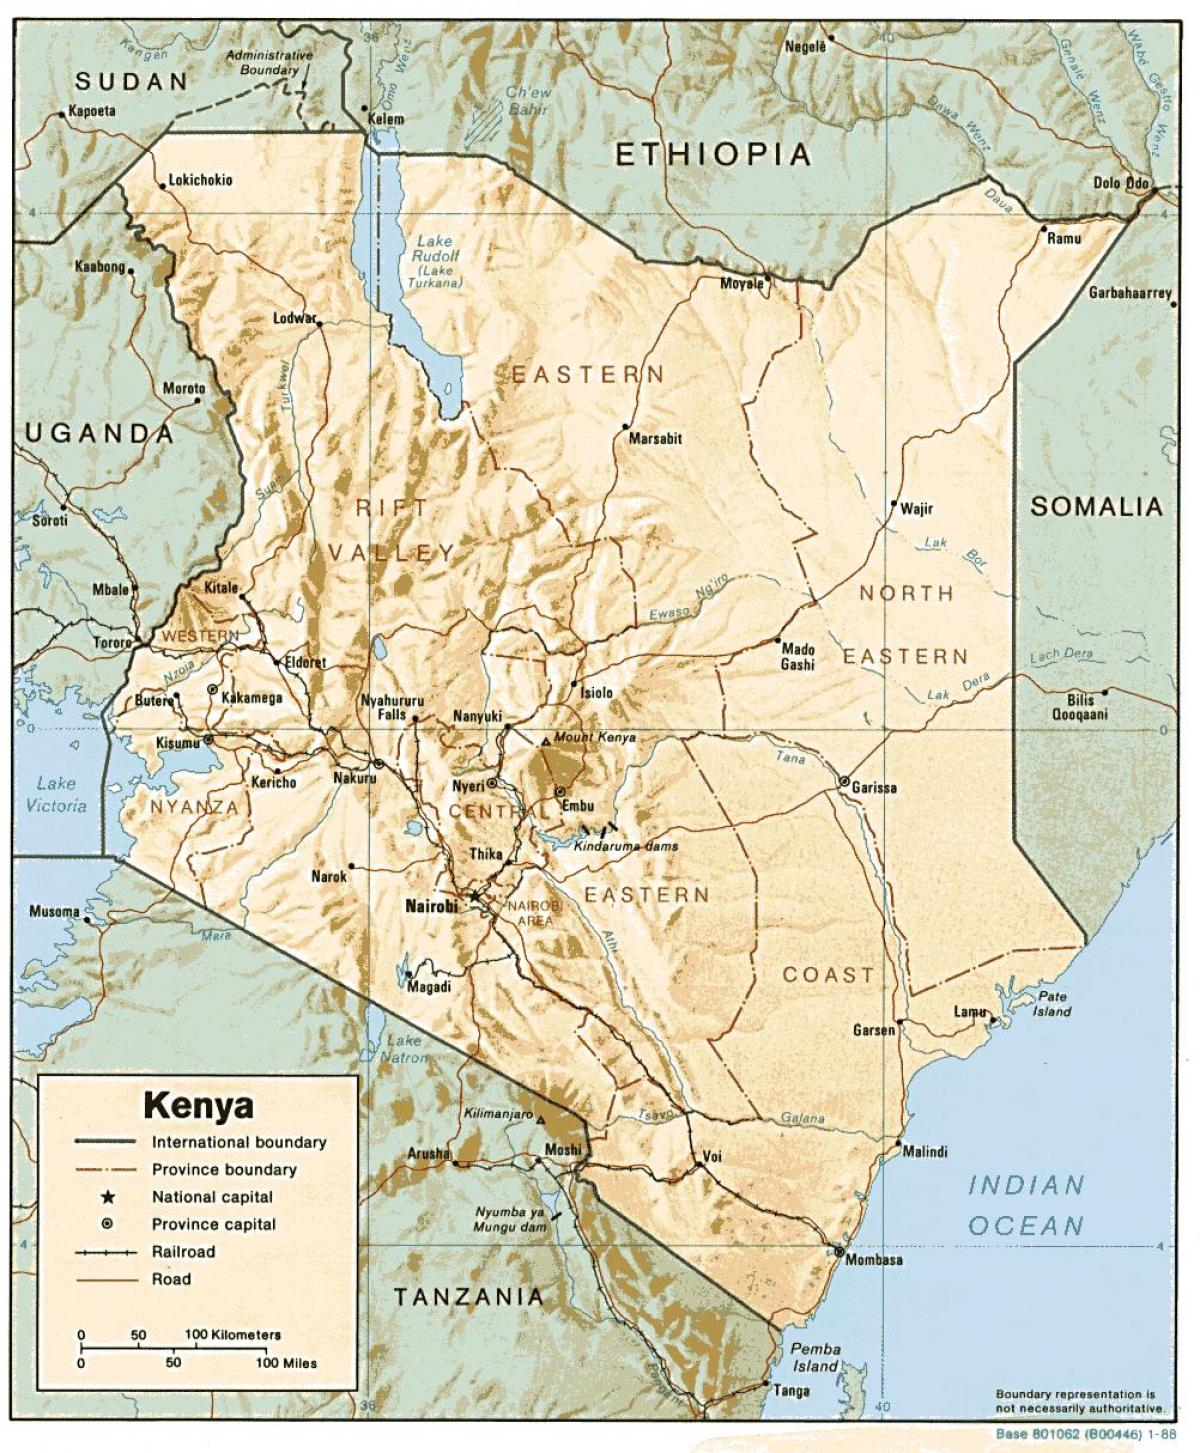 map of Kenya showing major towns